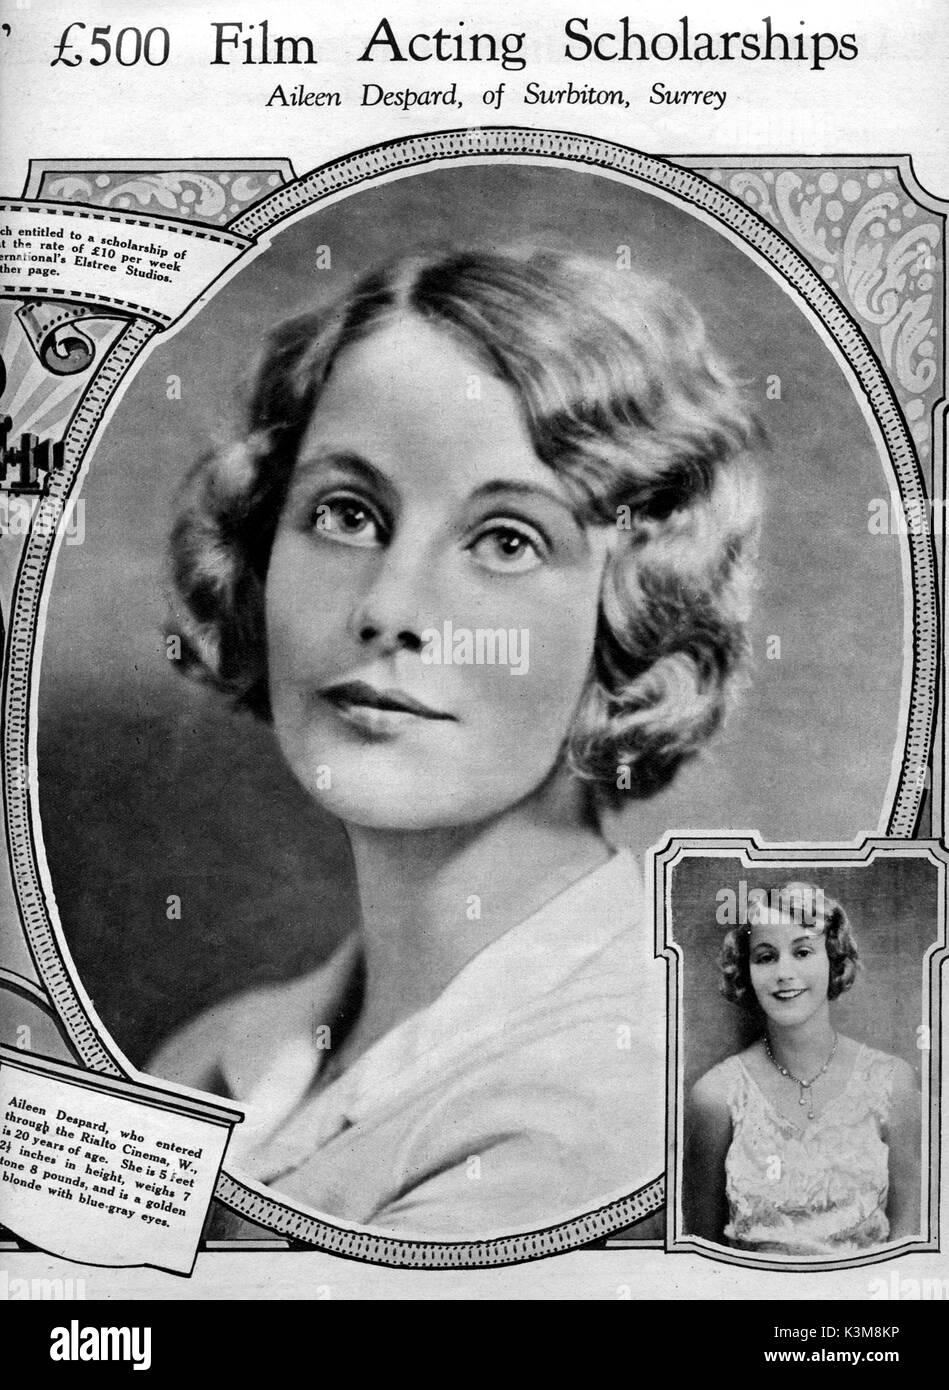 AILEEN DESPARD THE FILM WEEKLY, Saturday, January 18th, 1930     Date: - Stock Image